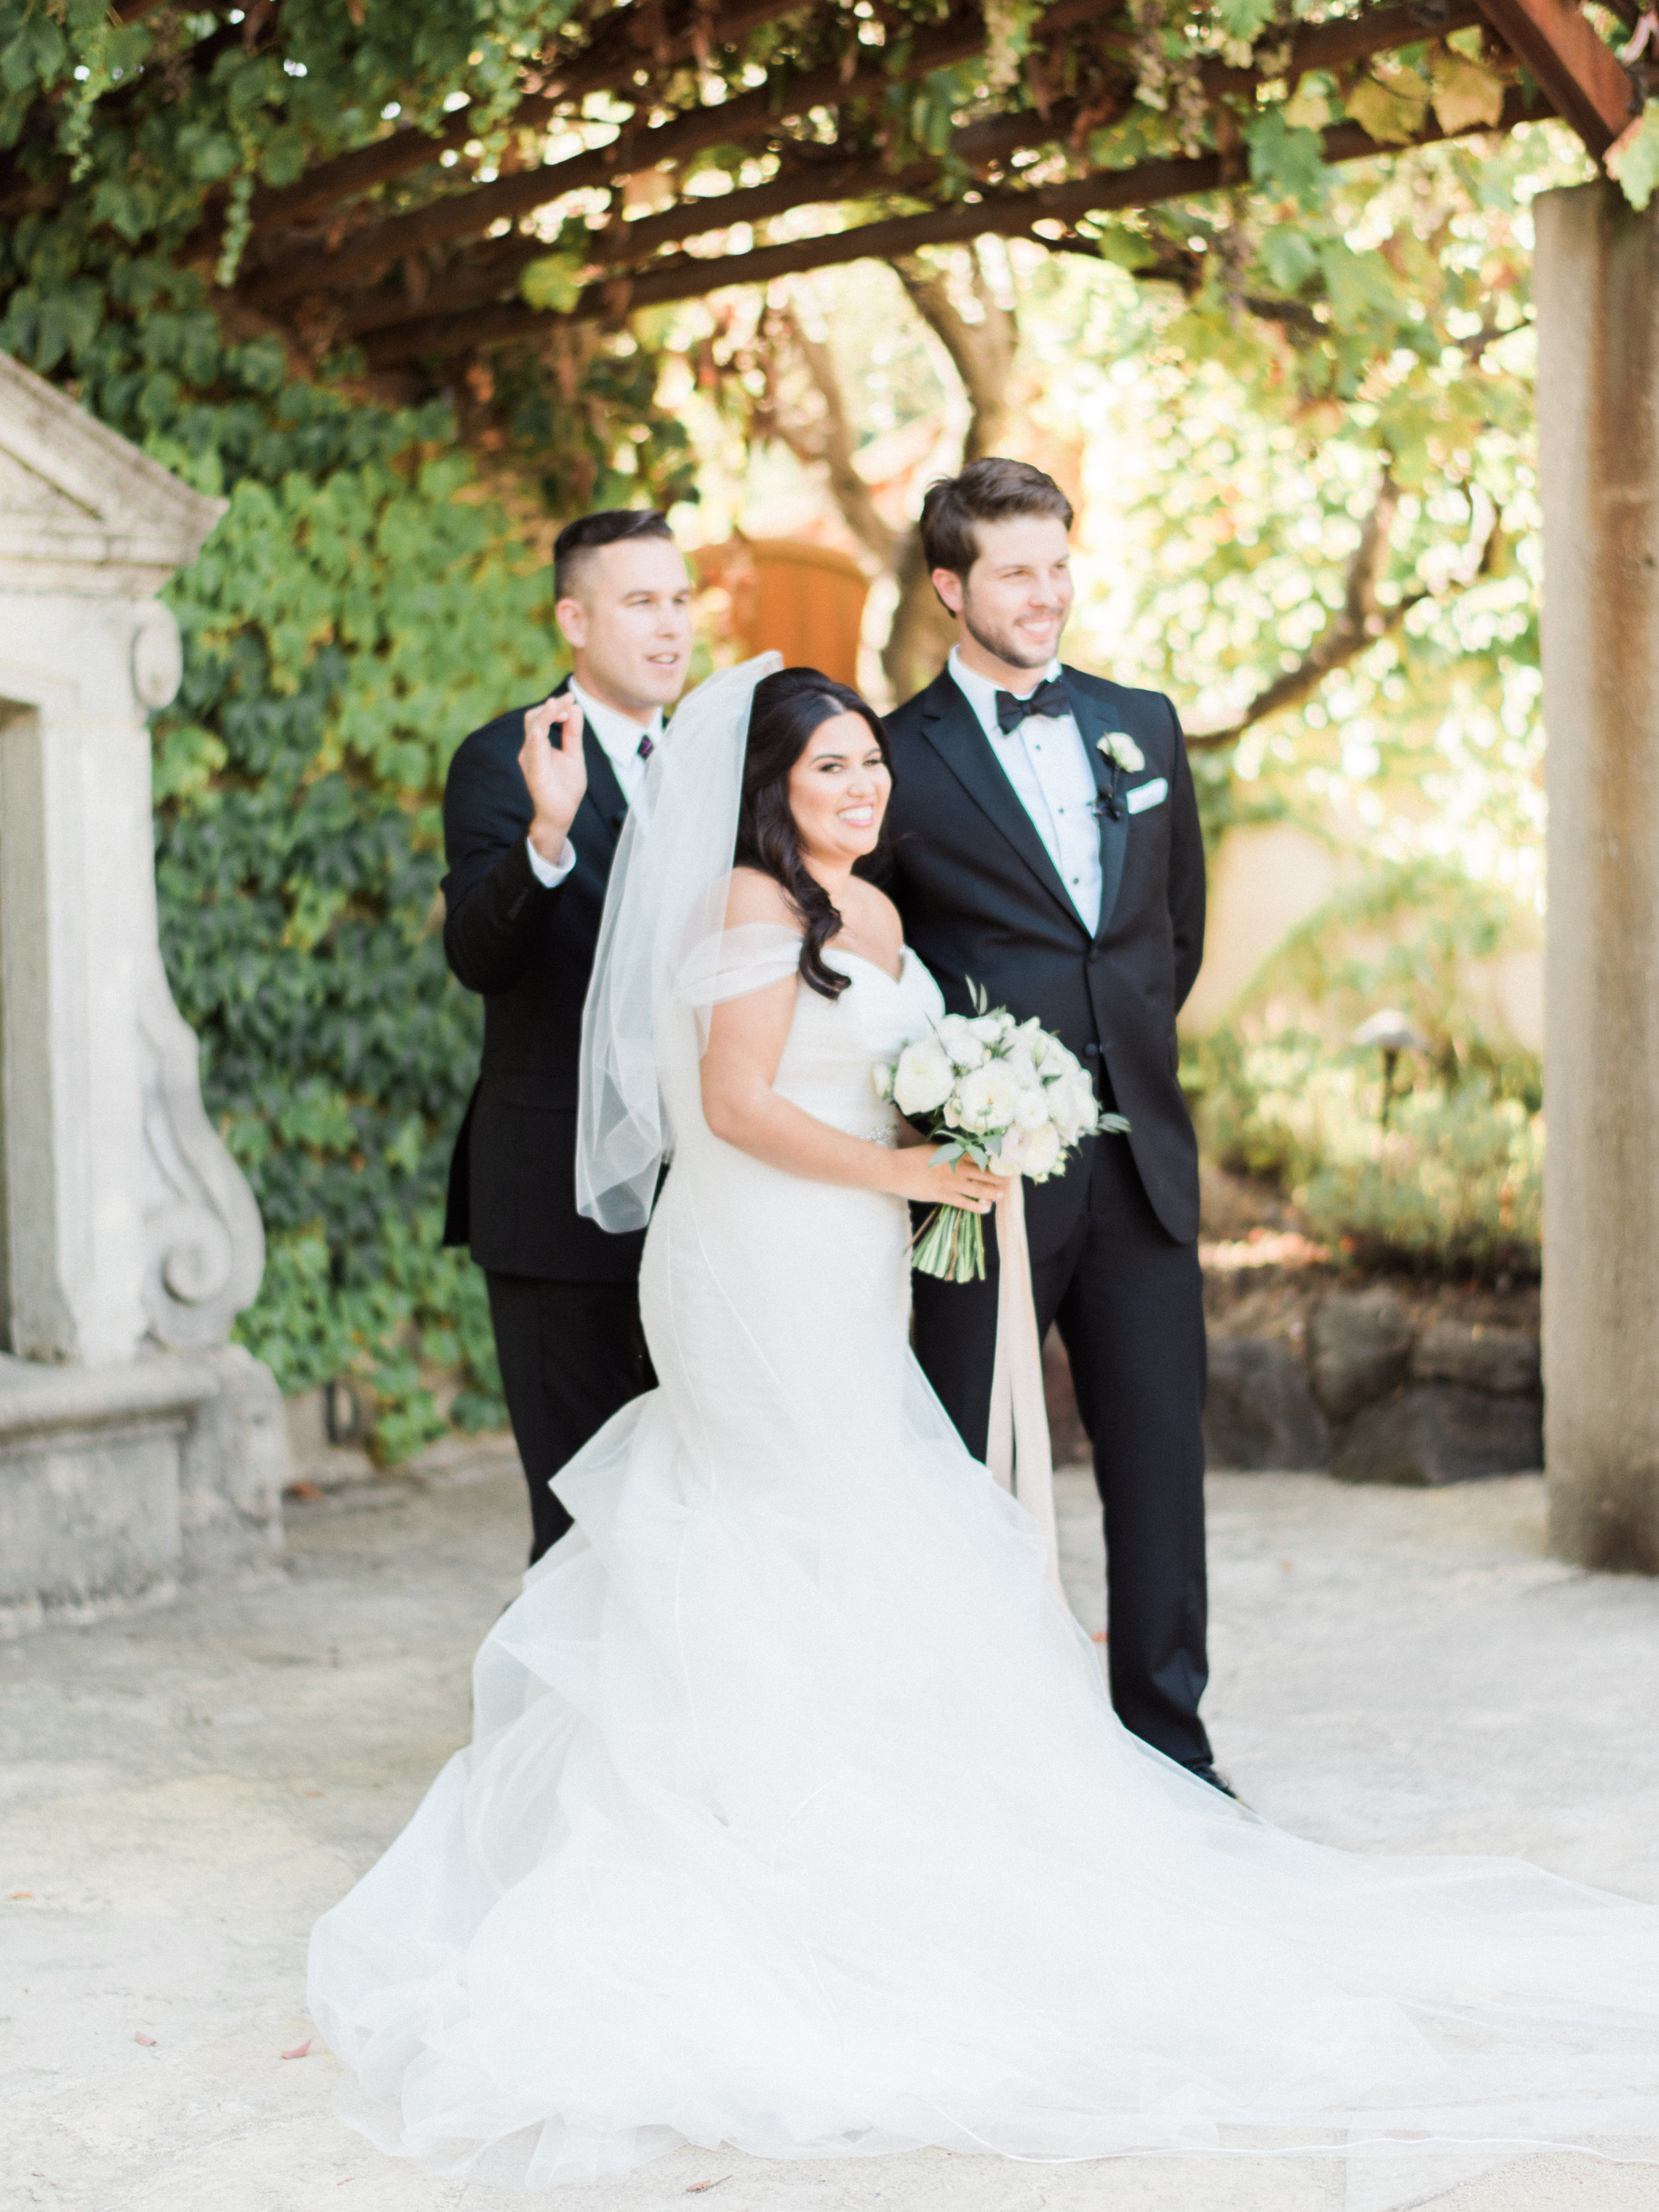 celineandchris-wedding-667.jpg